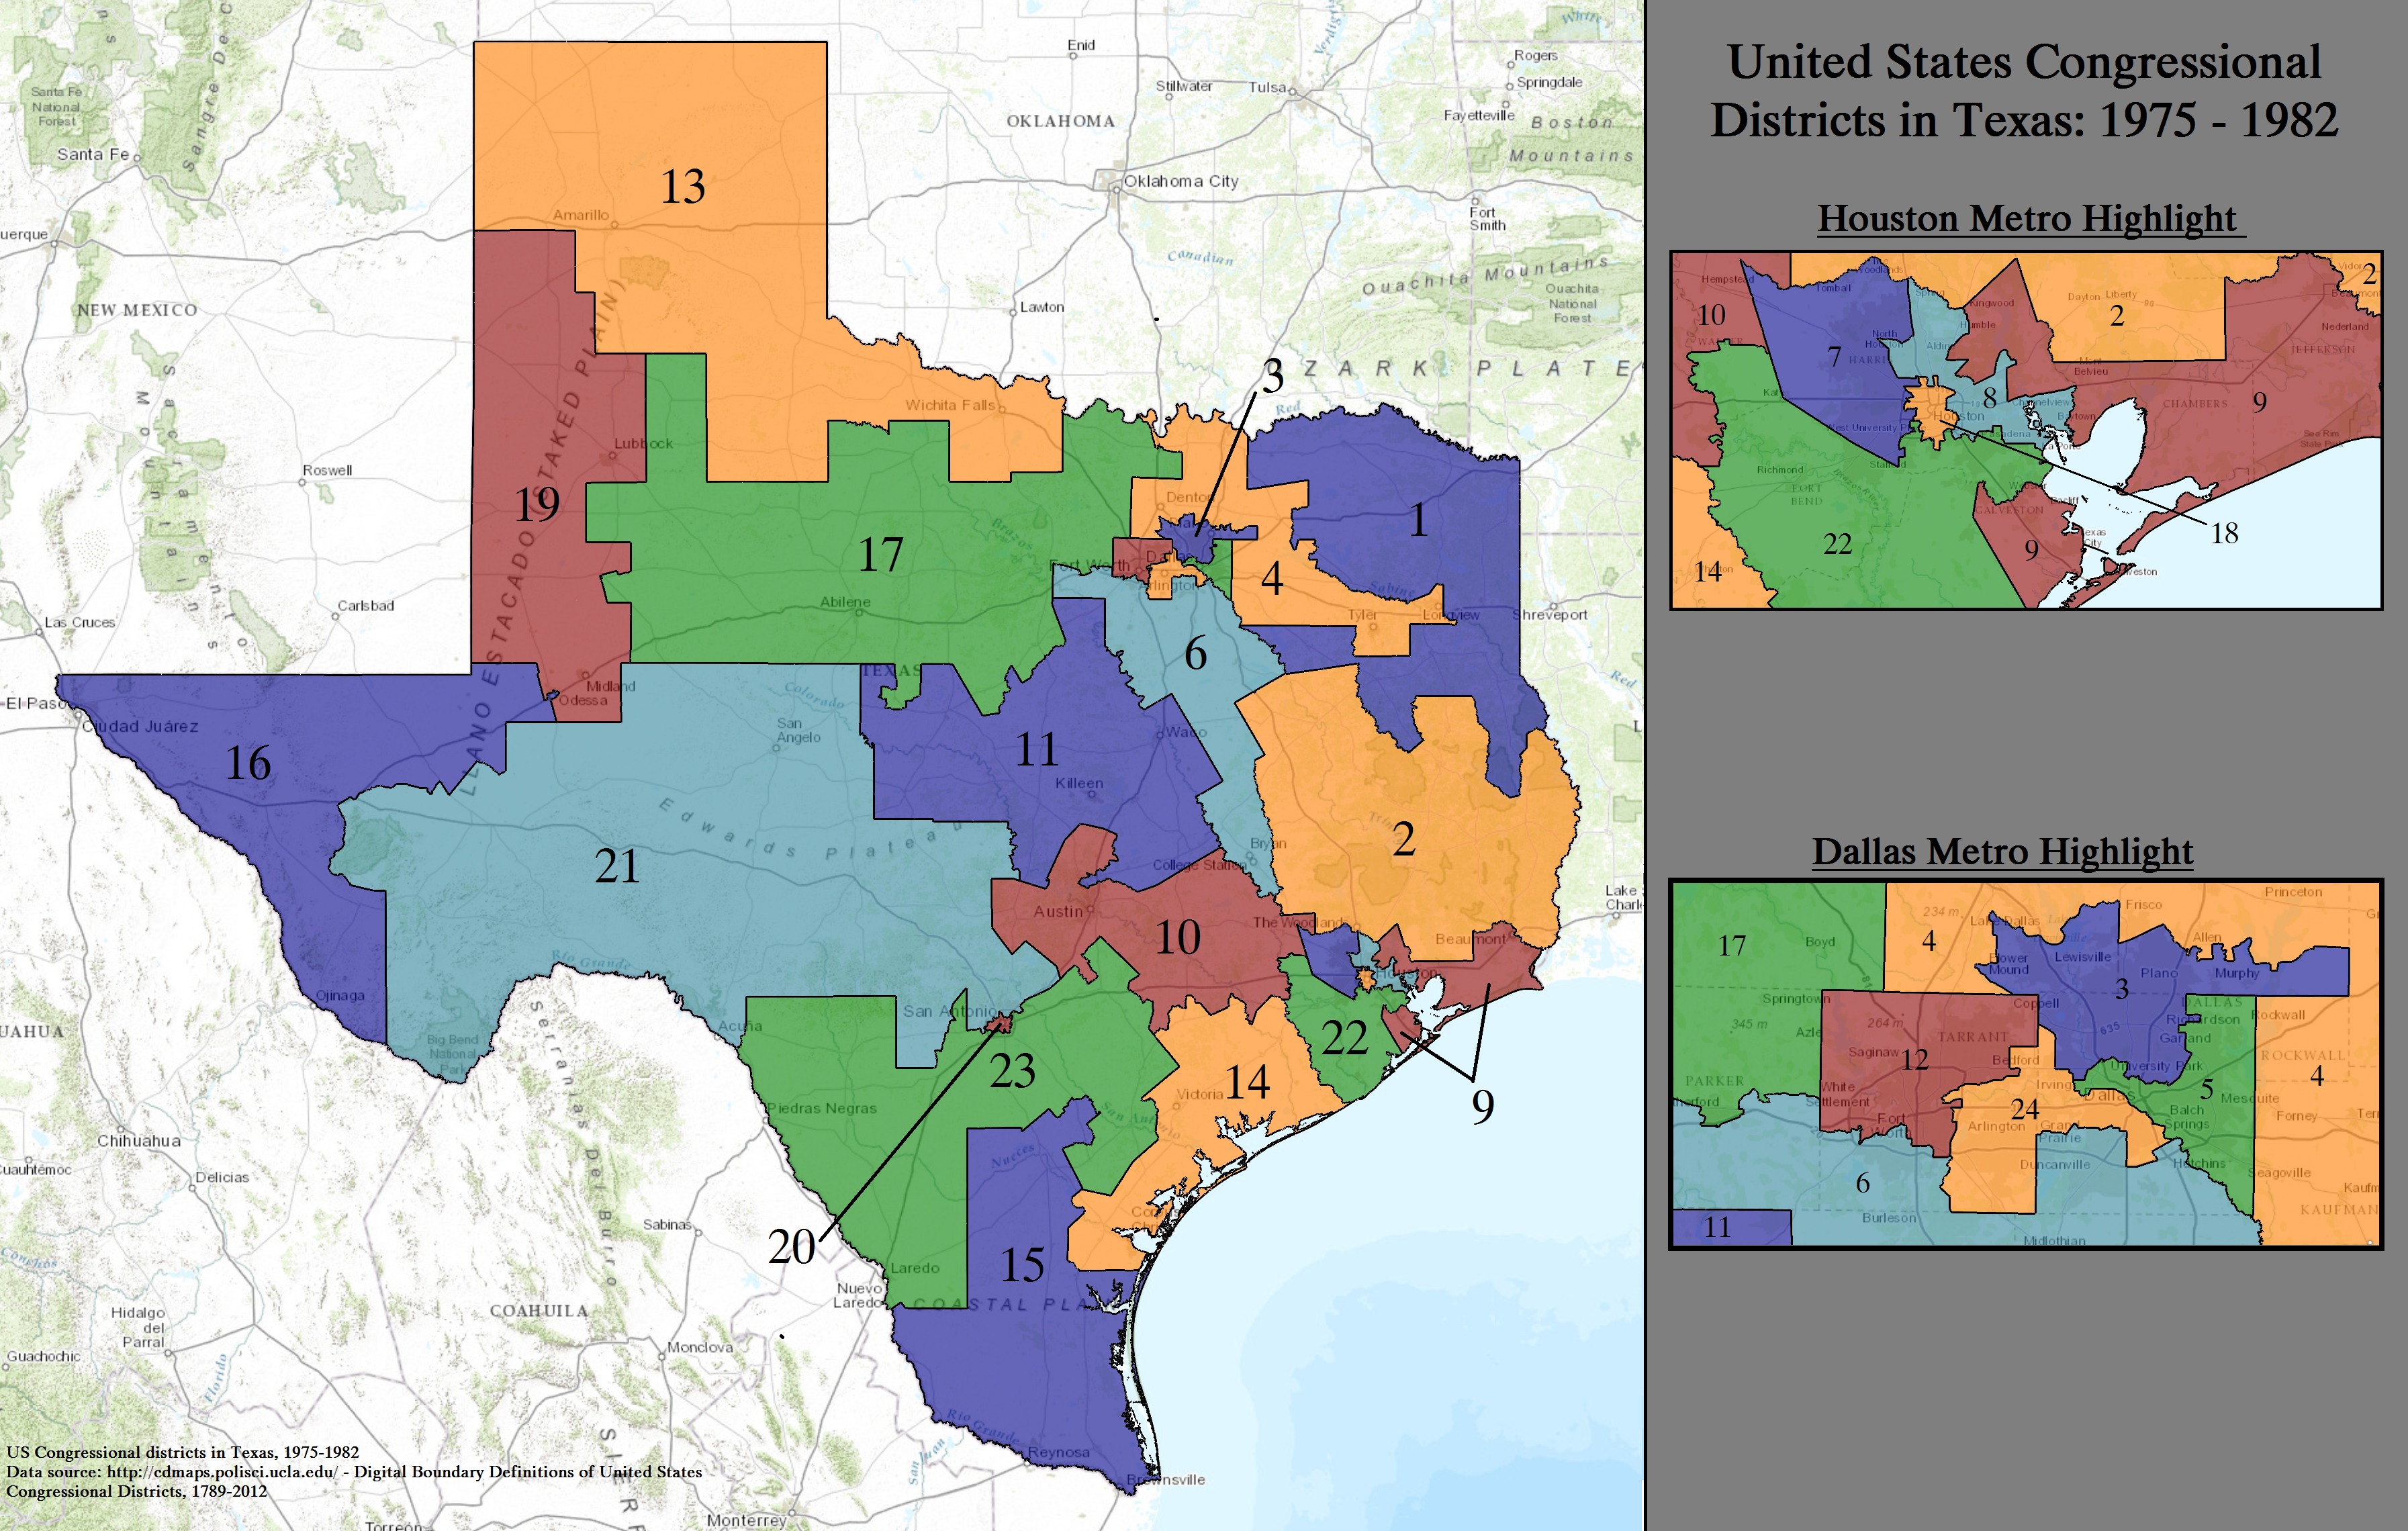 FileUnited States Congressional Districts In Texas 1975